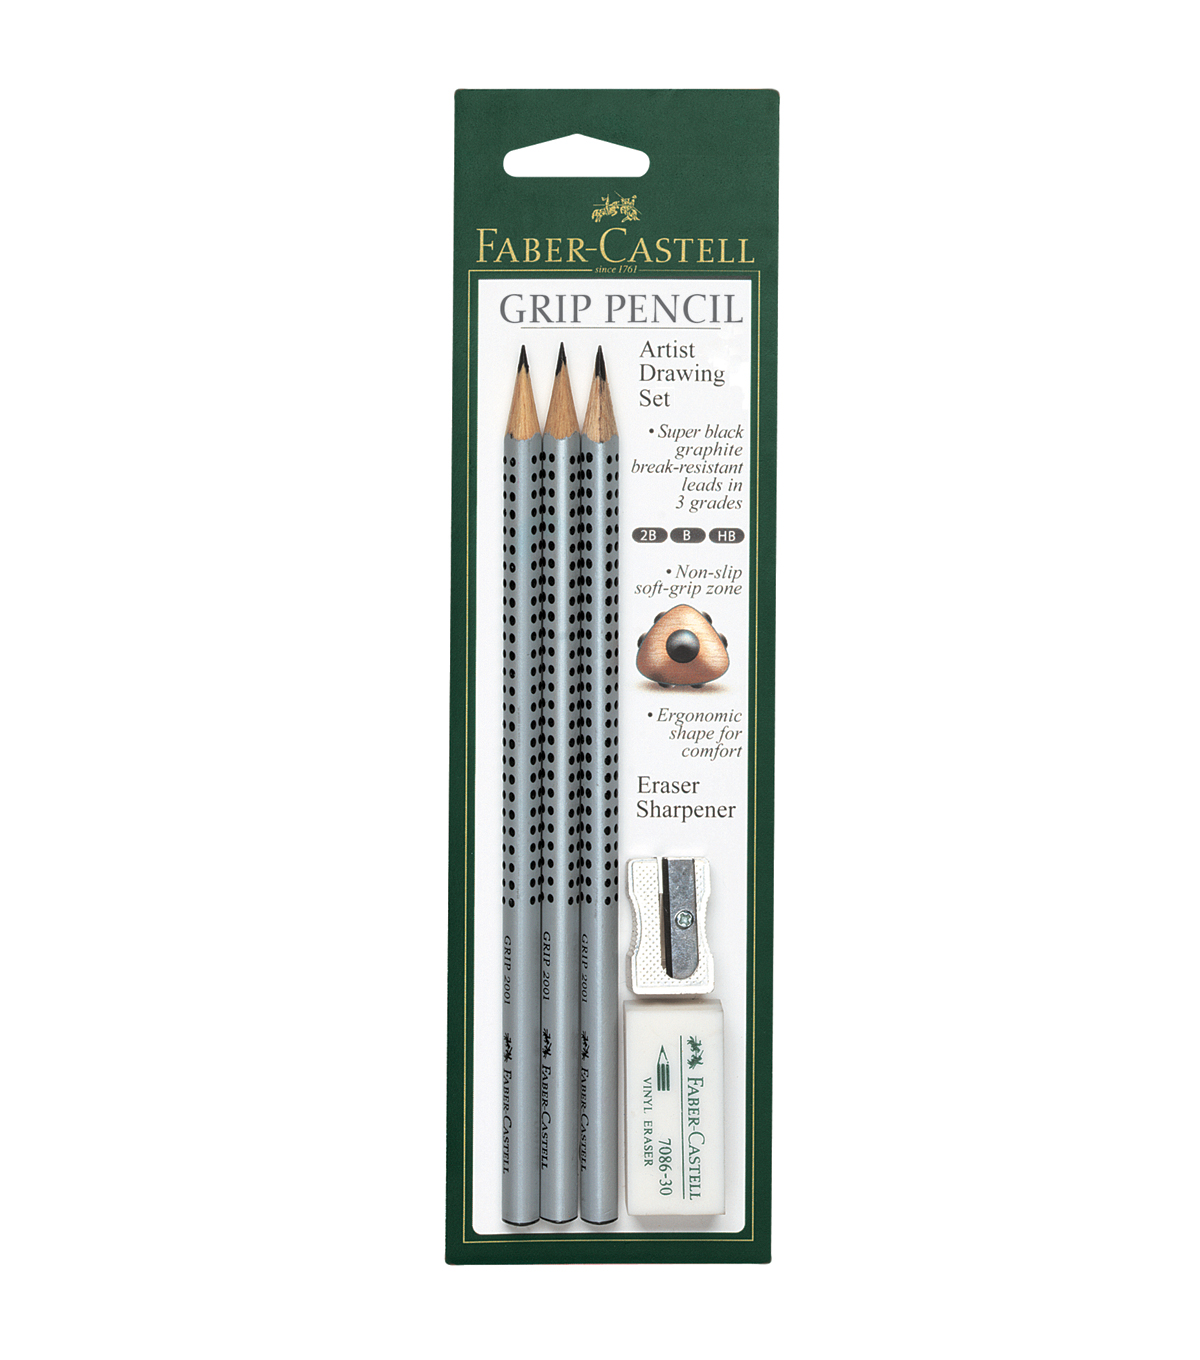 Faber Castell Grip Pencil Sketch Set